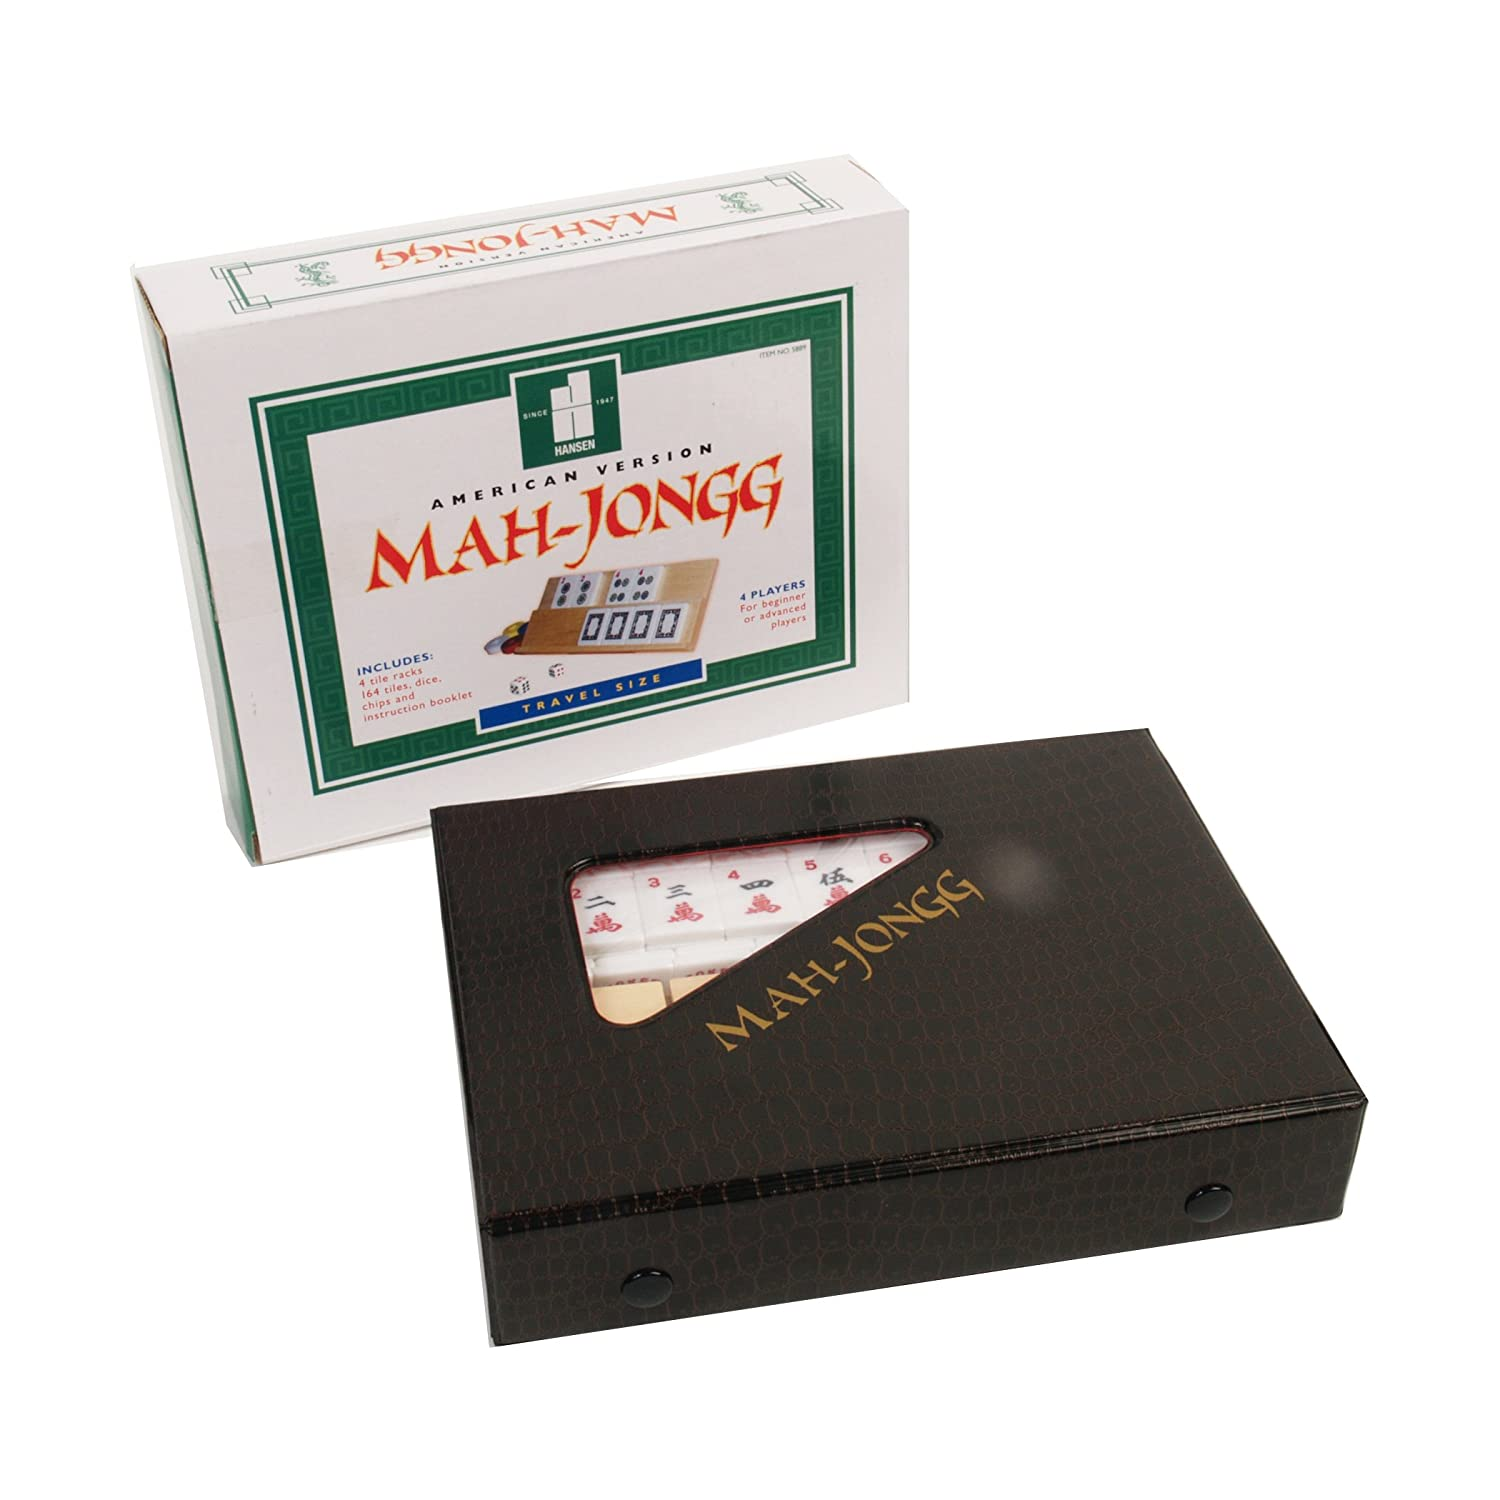 Mah-Jongg American Version Travel Game John N. Hansen Co. 5889